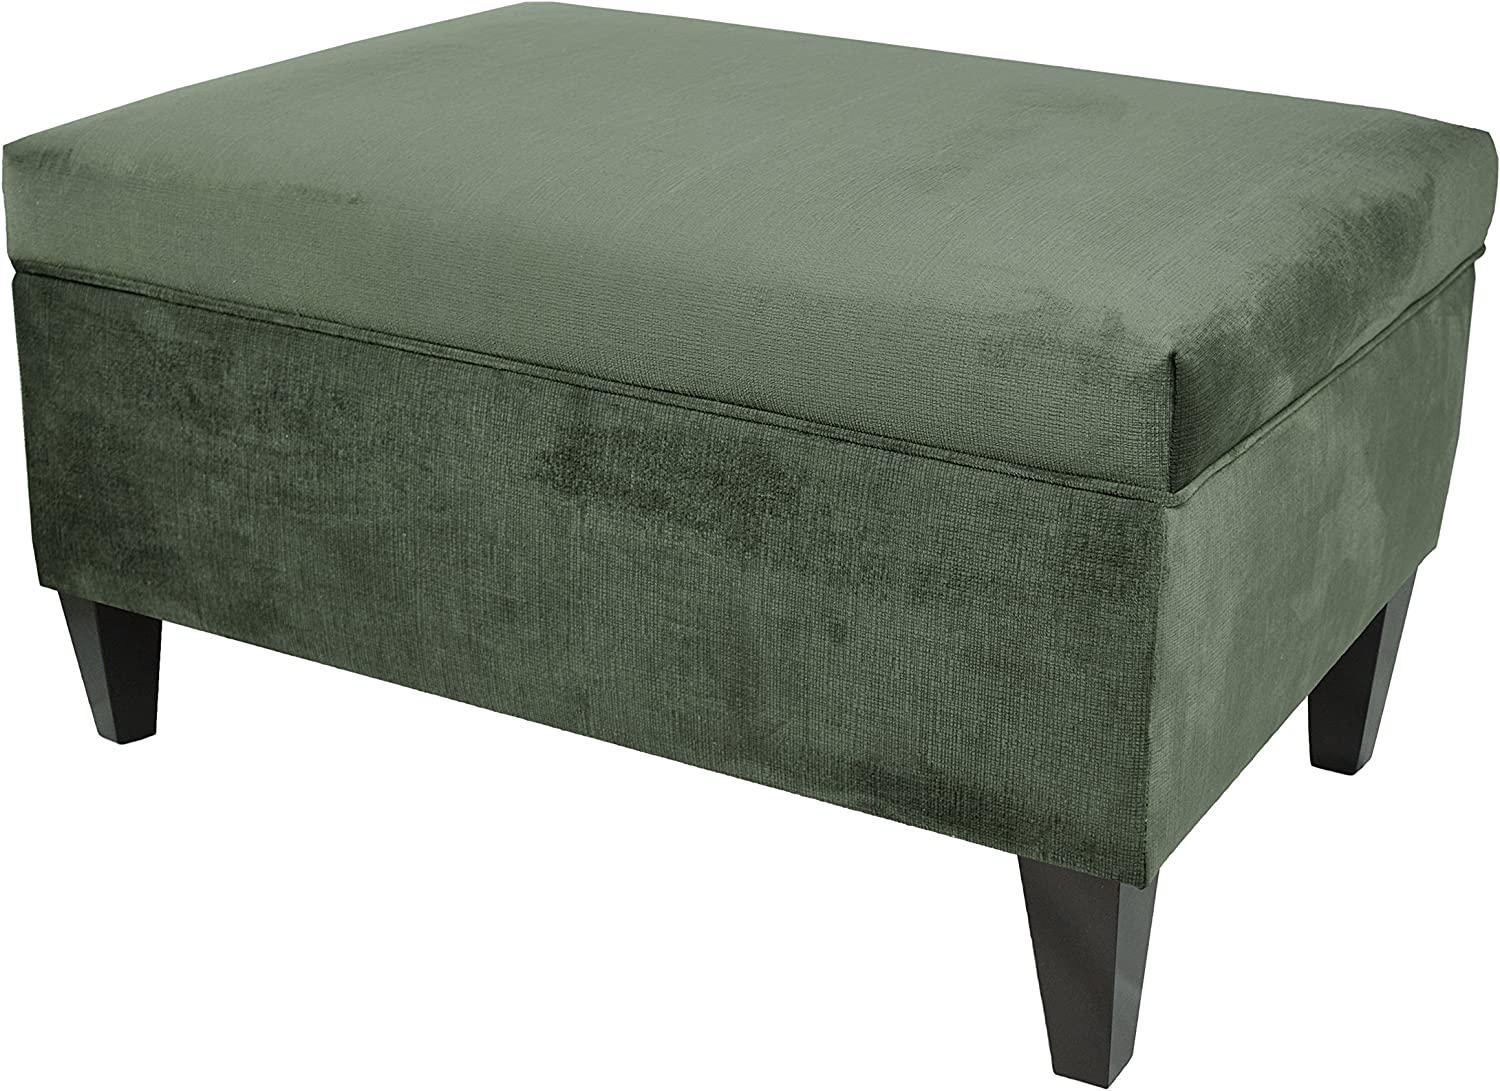 MJL Furniture Designs Brooklyn Collection Large Upholstered Living Room Lift Top Storage Ottoman, Ennis Series, Pewter